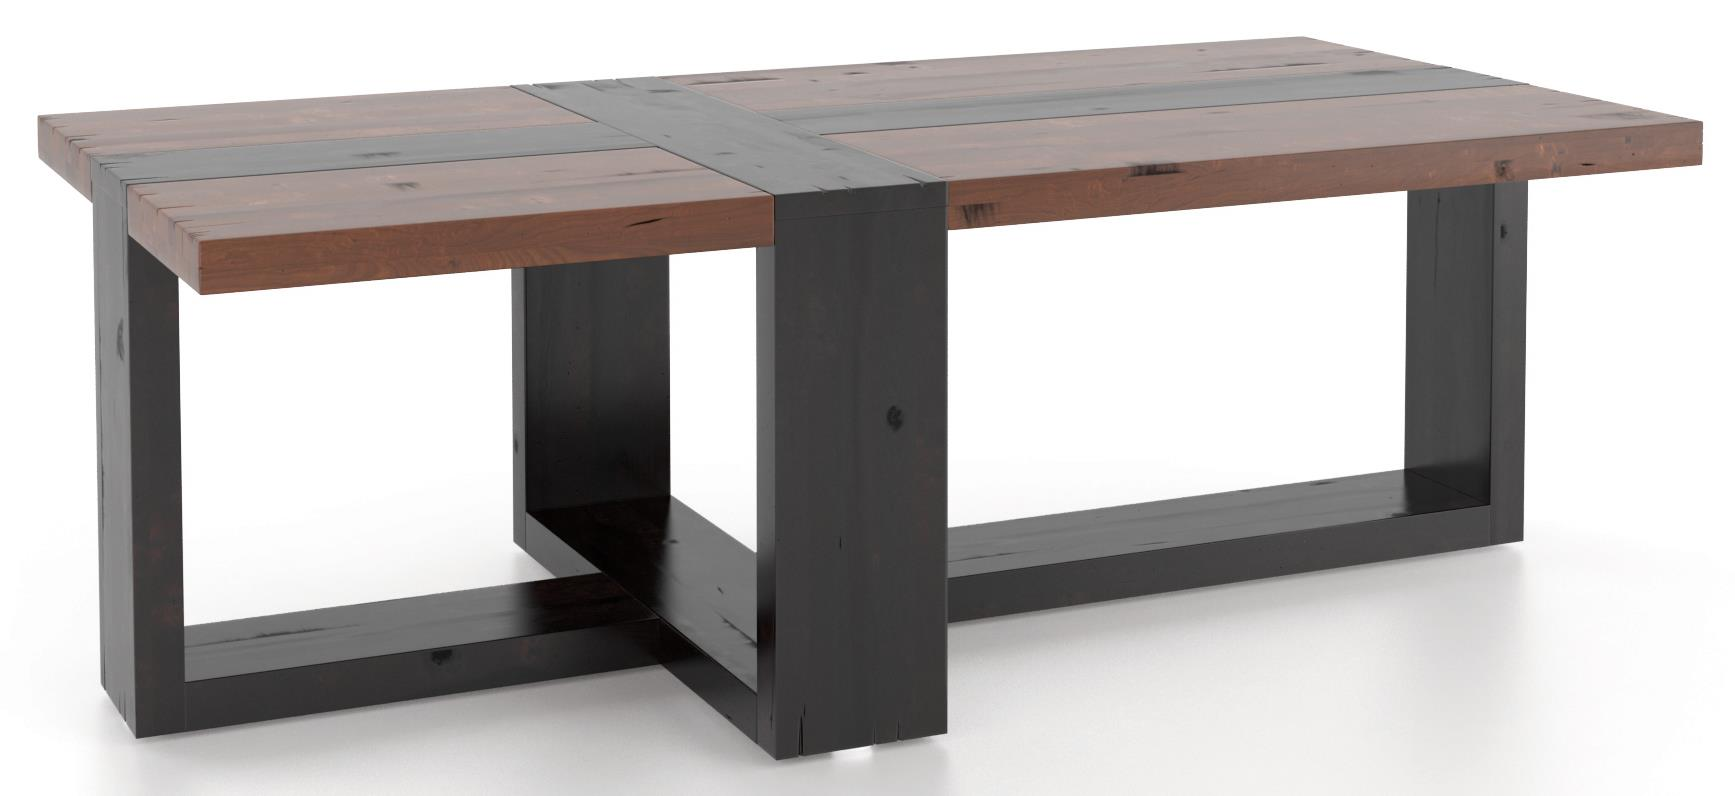 Loft - Living <b>Customizable</b> Rectangular Coffee Table by Canadel at Suburban Furniture